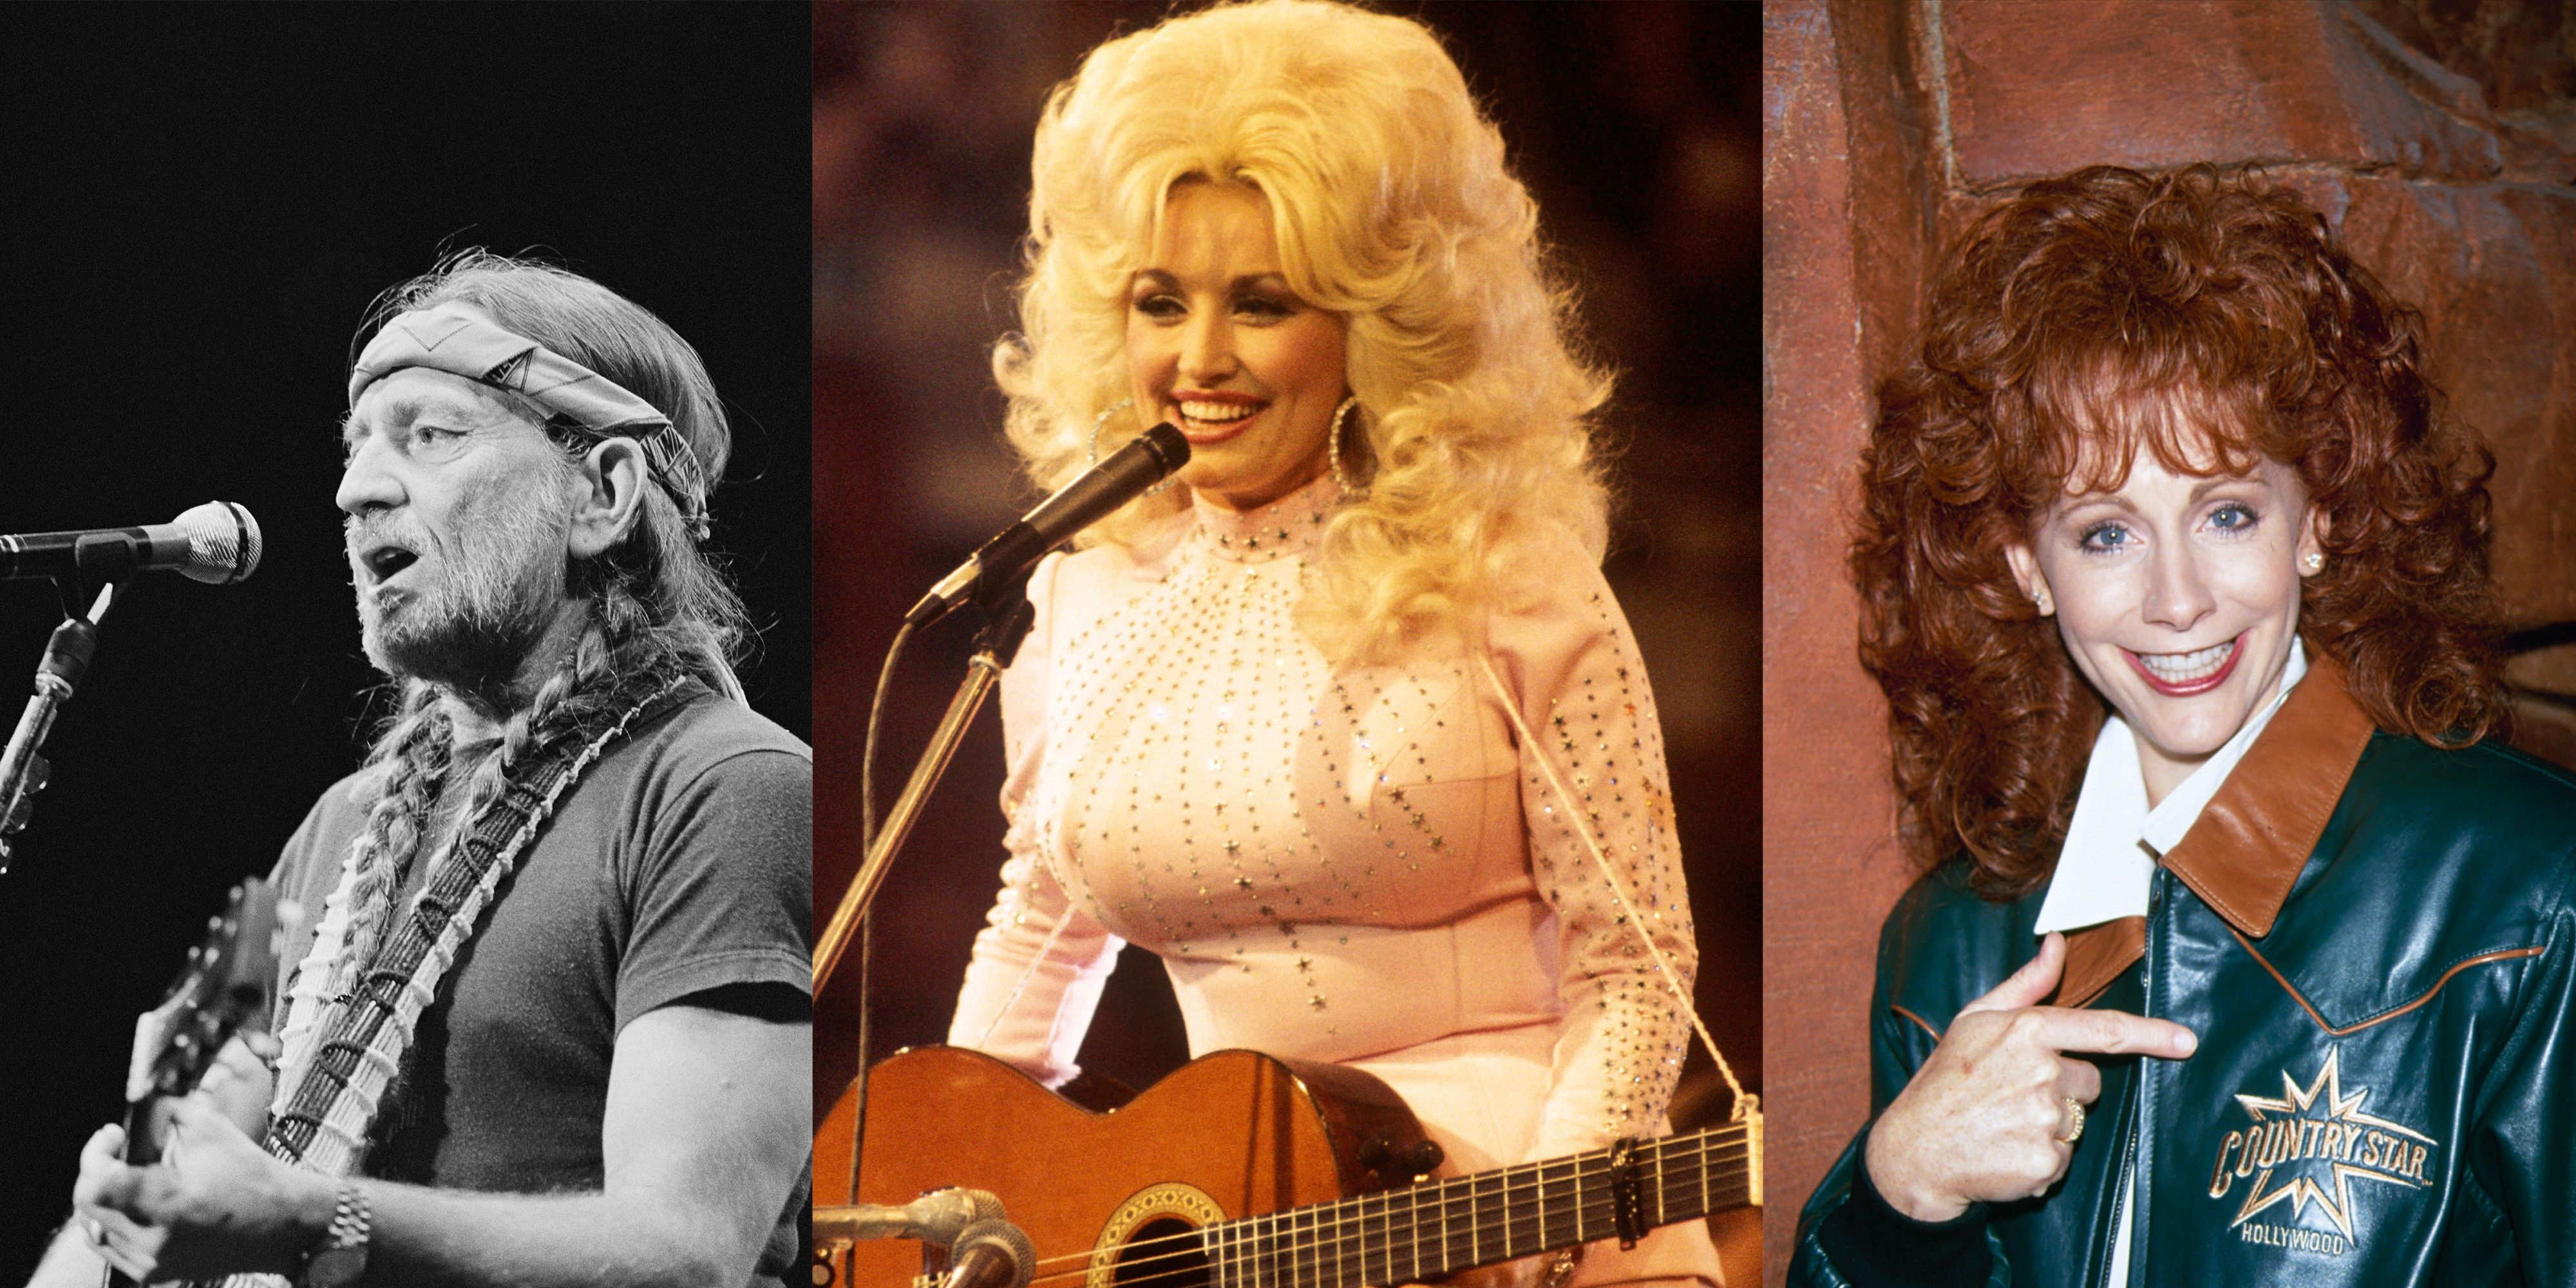 What blonde country music sex symbol sang her